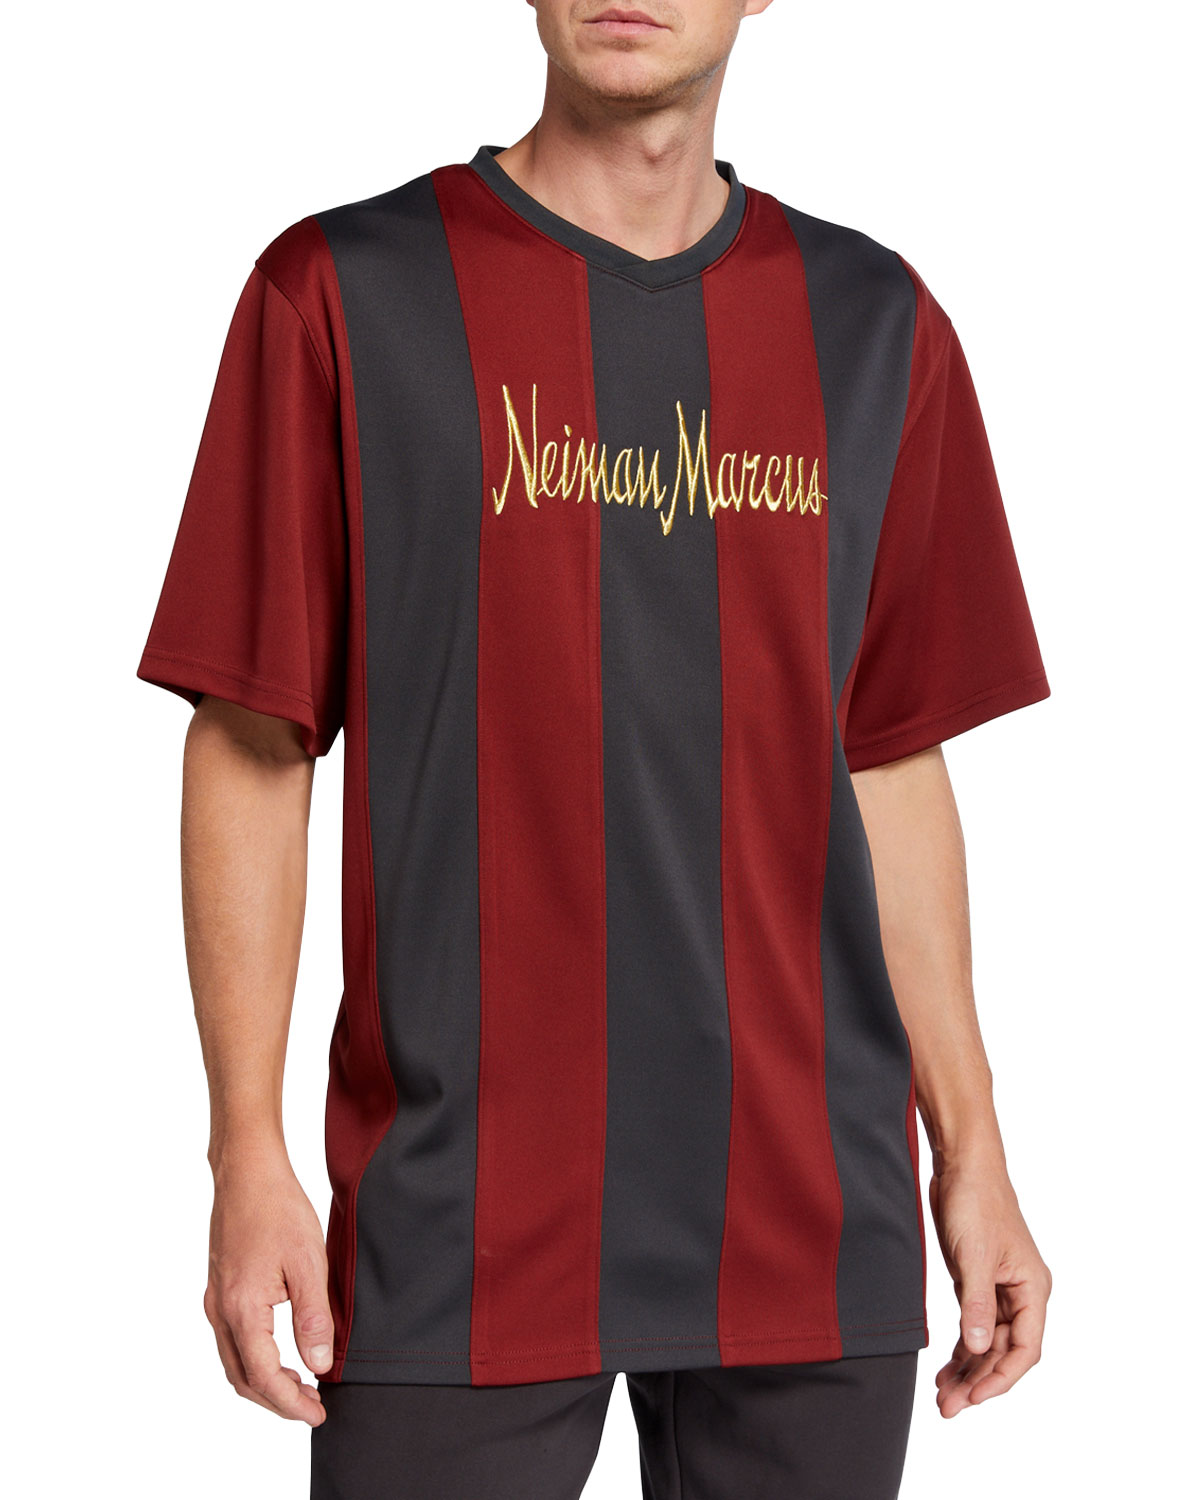 Neiman Marcus - Produced by Staple Men's Retro Pique Soccer Jersey Shirt